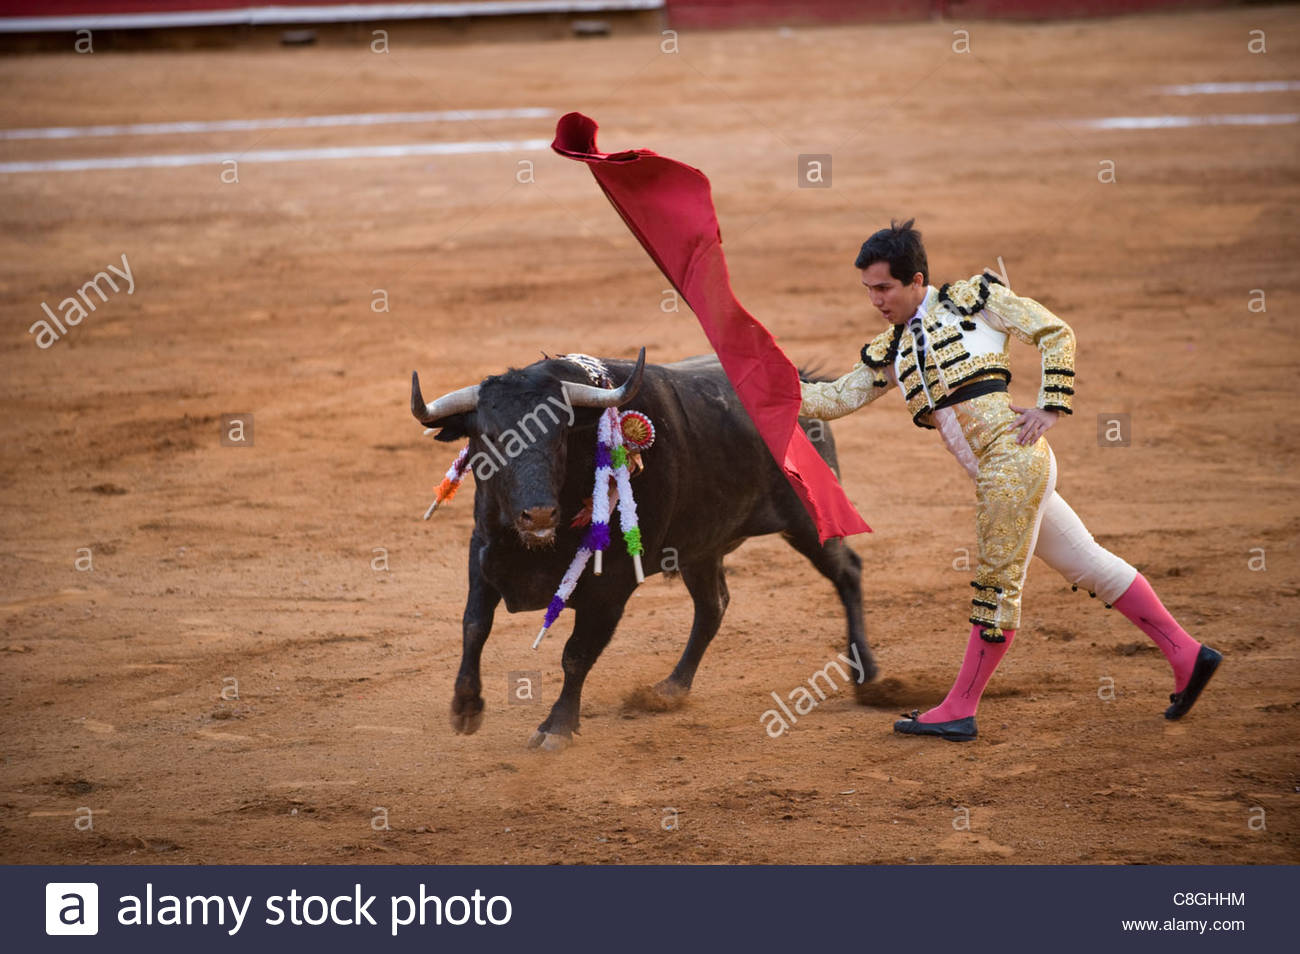 At a bullfight in Mexico City, a bull charges past the Matador. - Stock Image